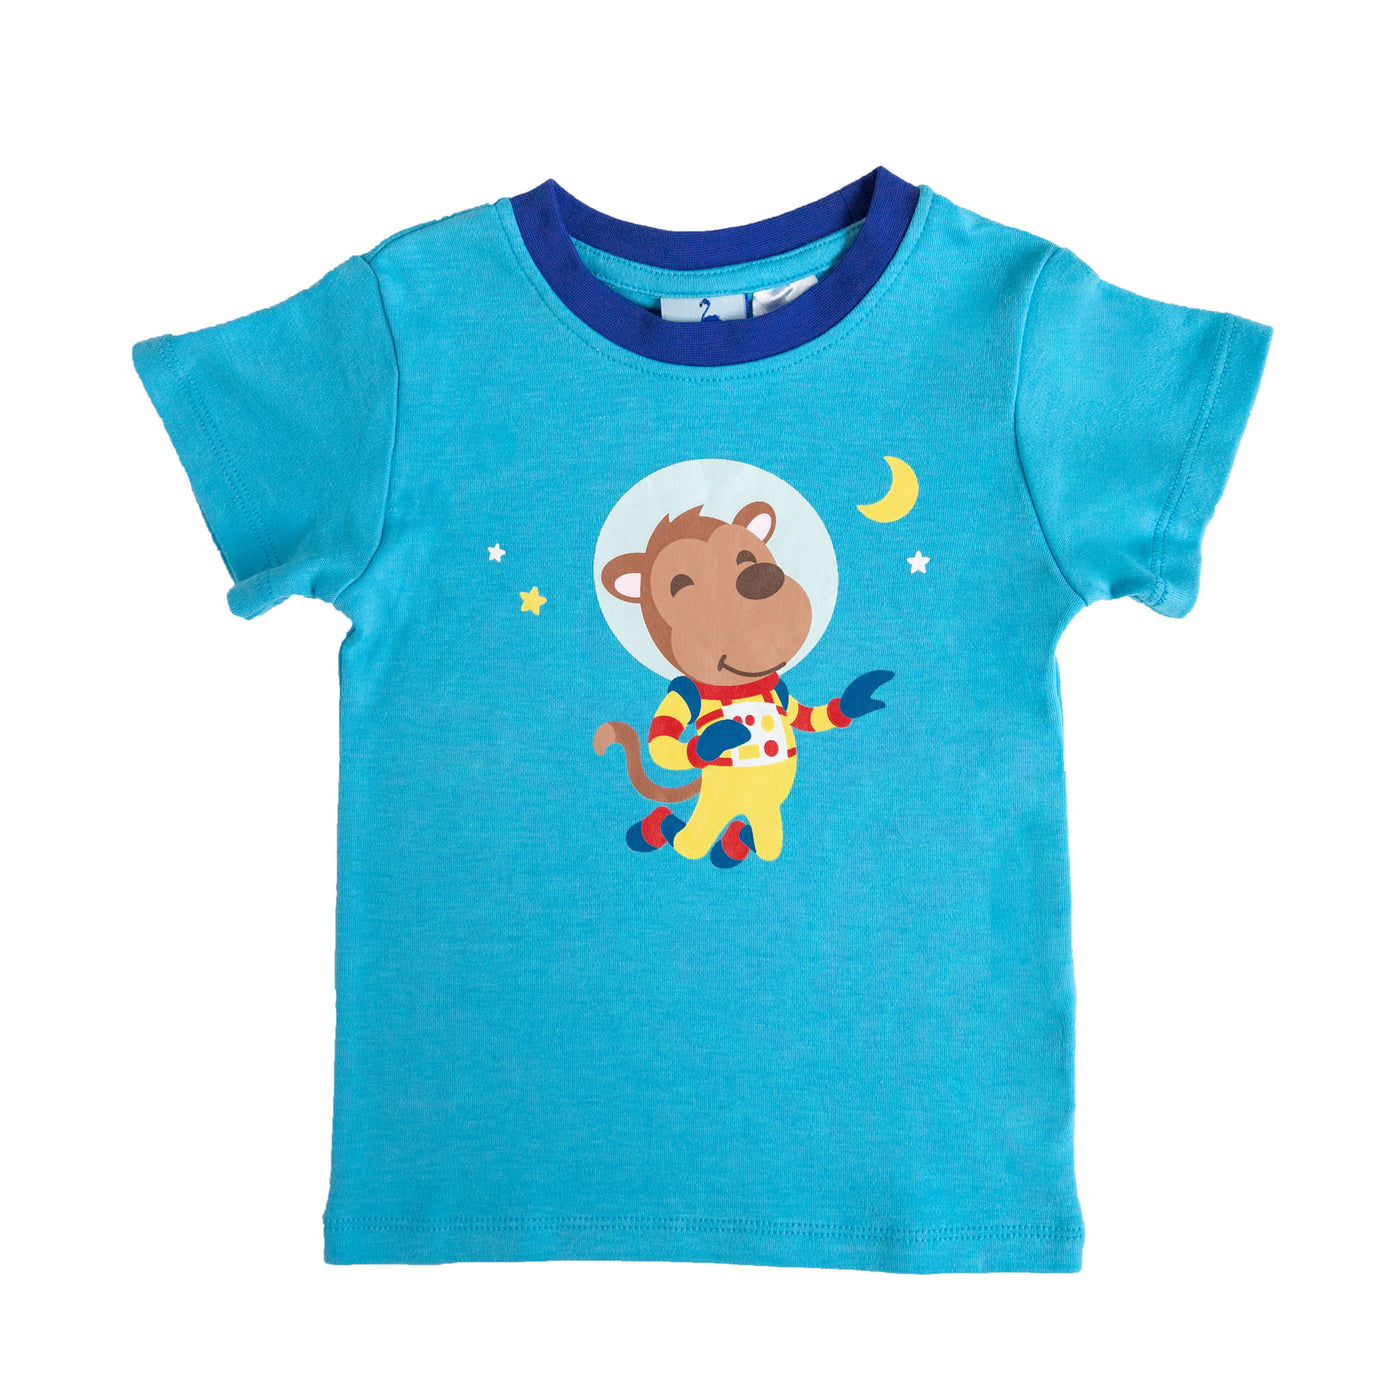 Space Monkey Short Sleeve Pyjama Top